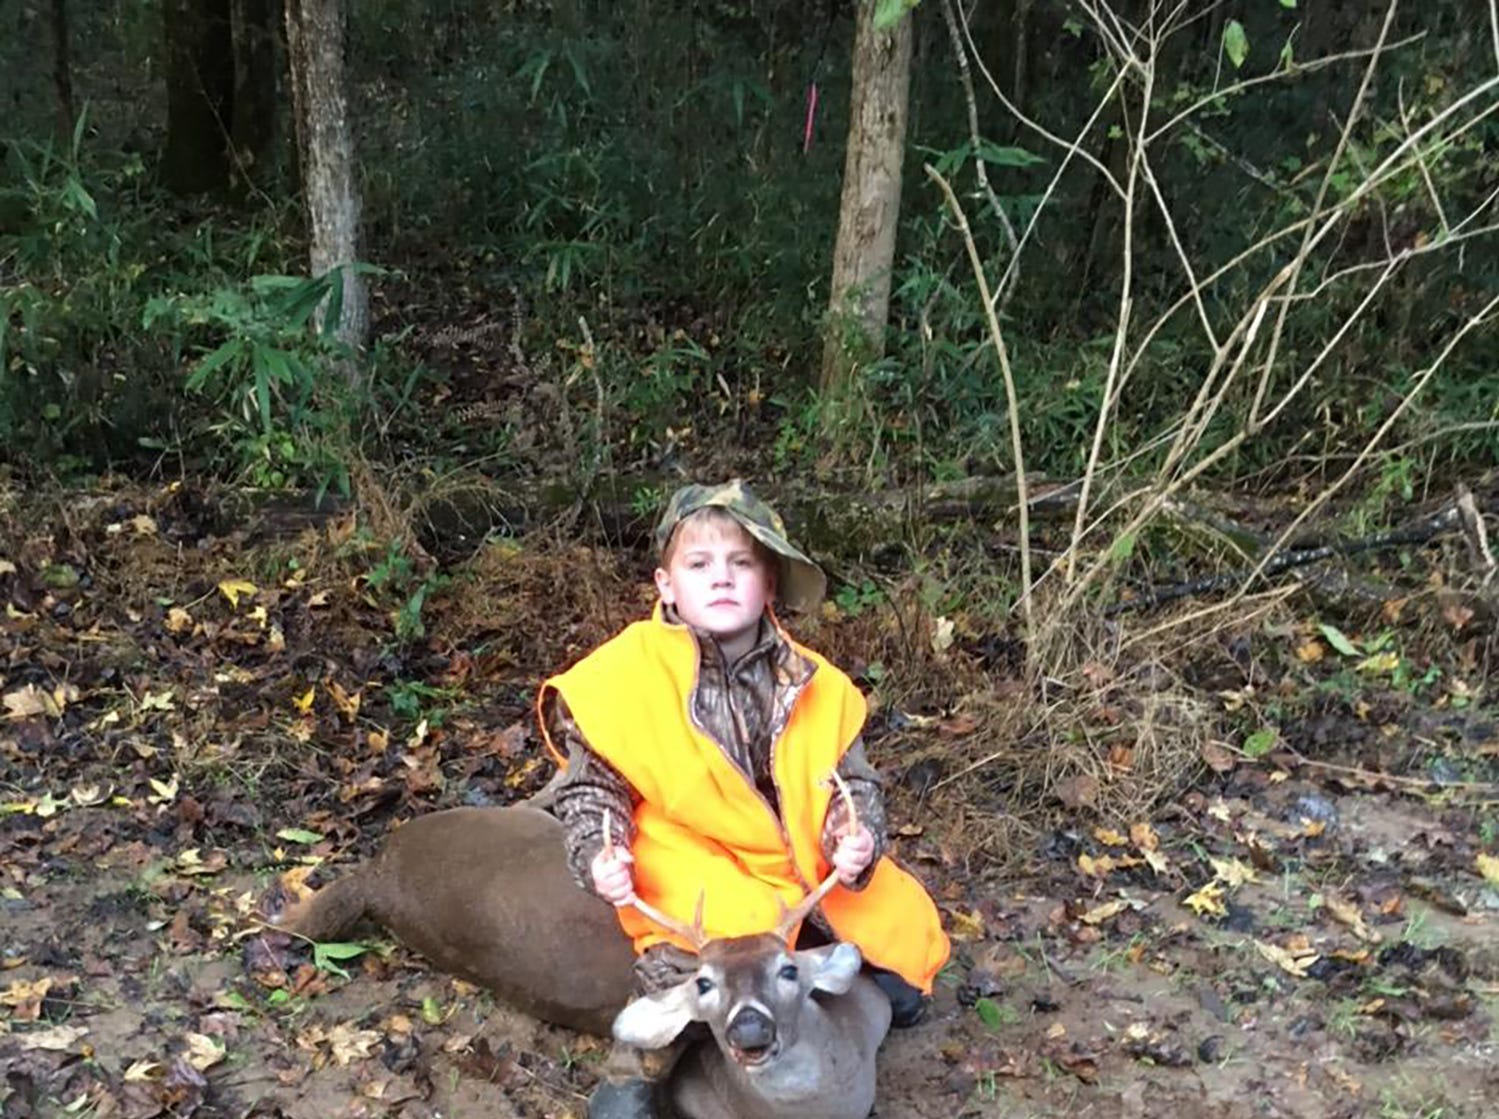 Brantley Smith, 7, of Brookhaven, harvested a 6-point while hunting in Jefferson County. Smith shot the deer, which was his first, with a .44 Magnum.